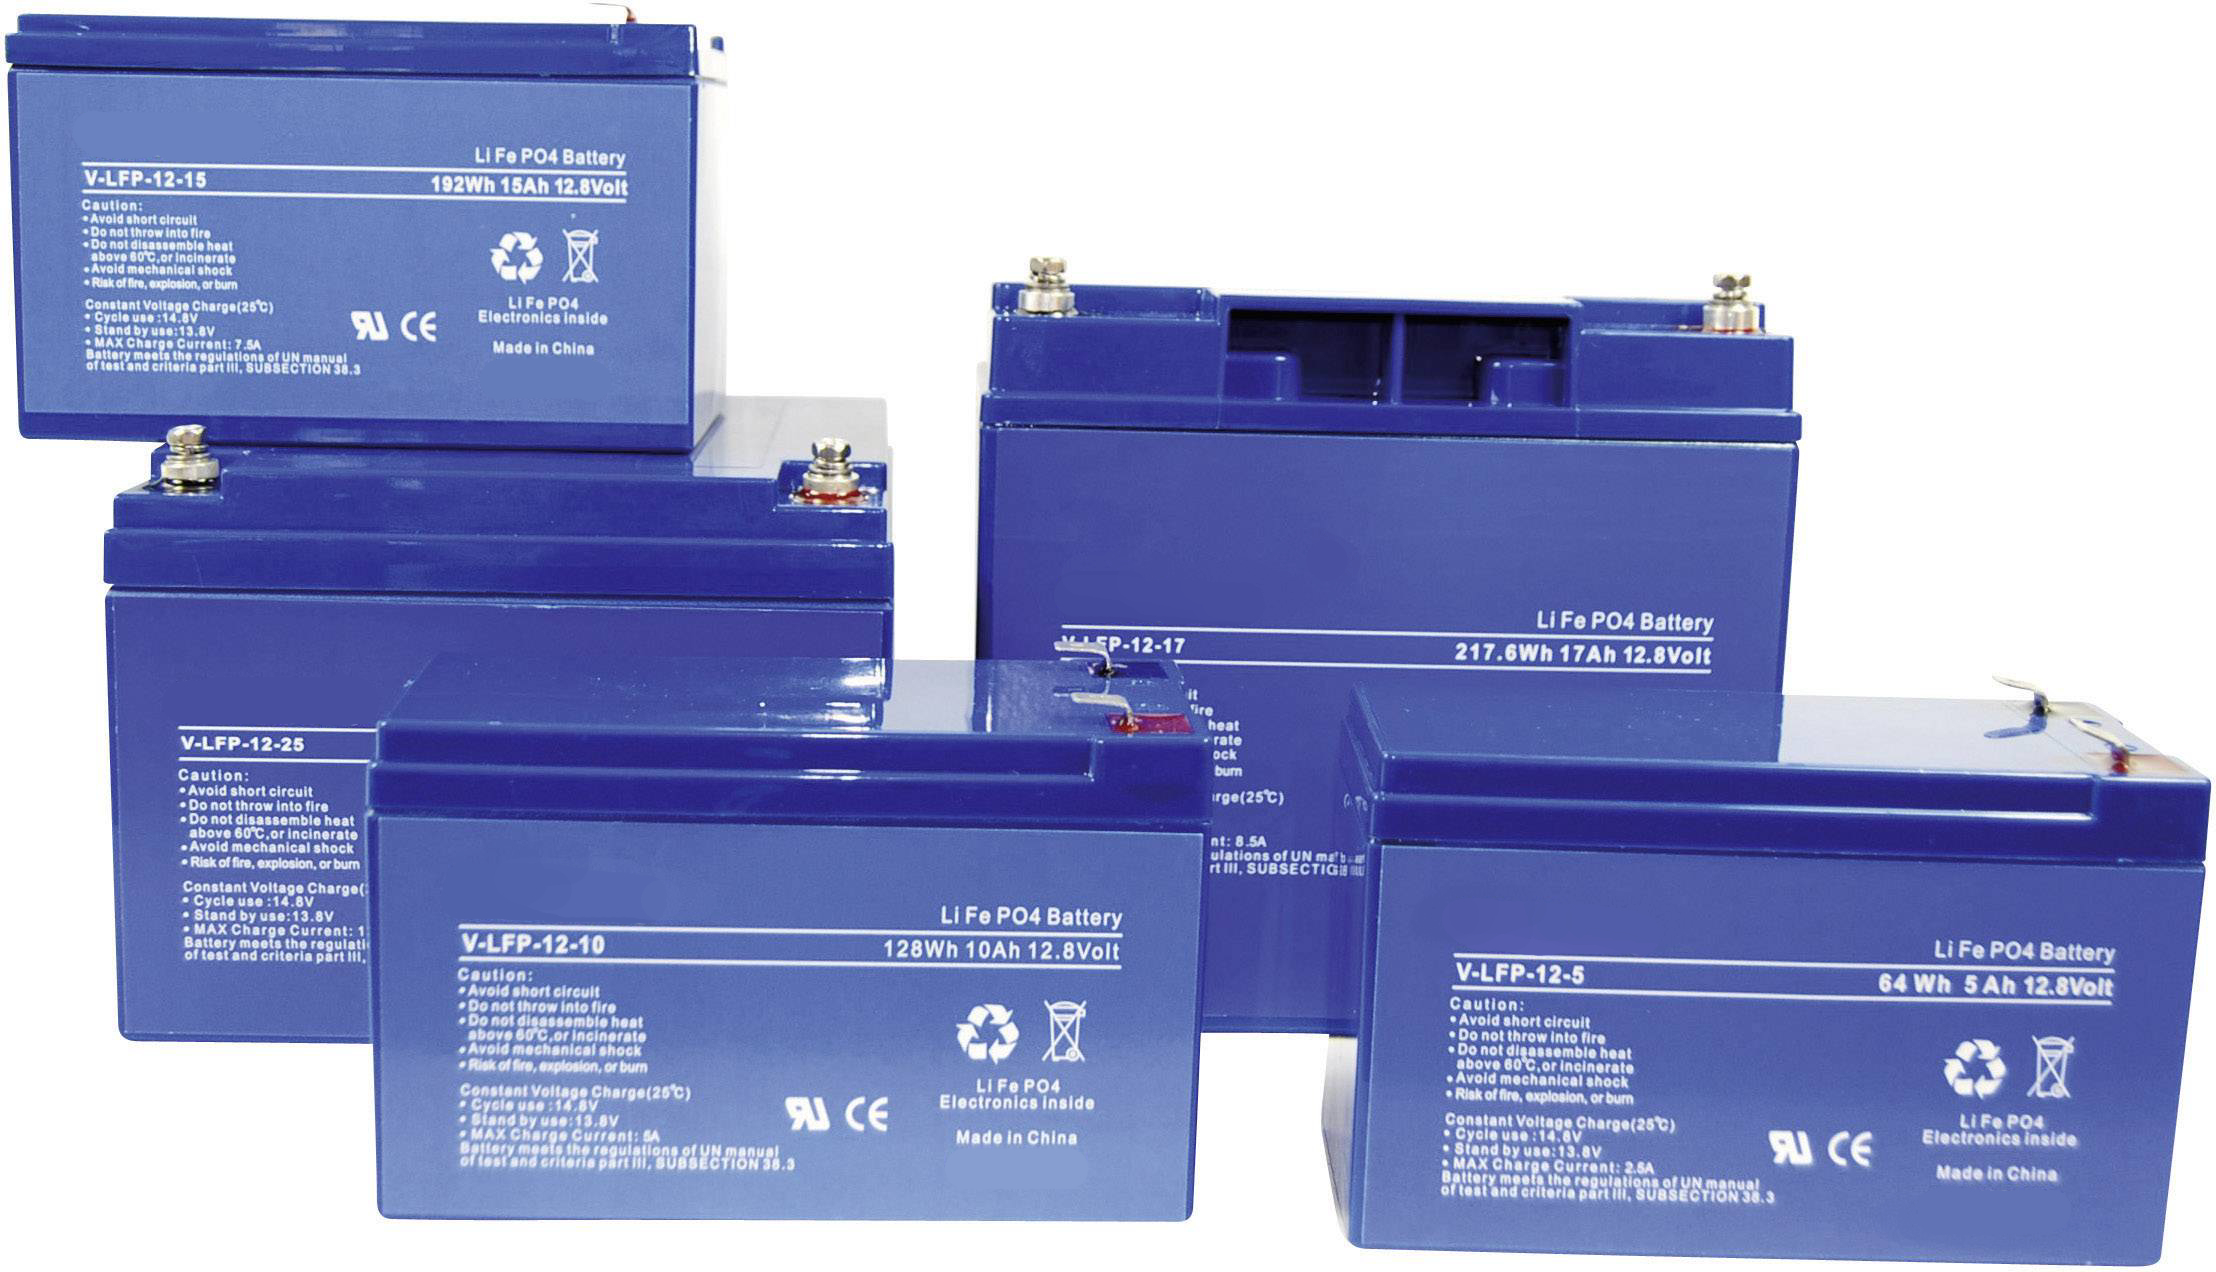 Batterie al litio LiFePO4 serie LFP Enerpower